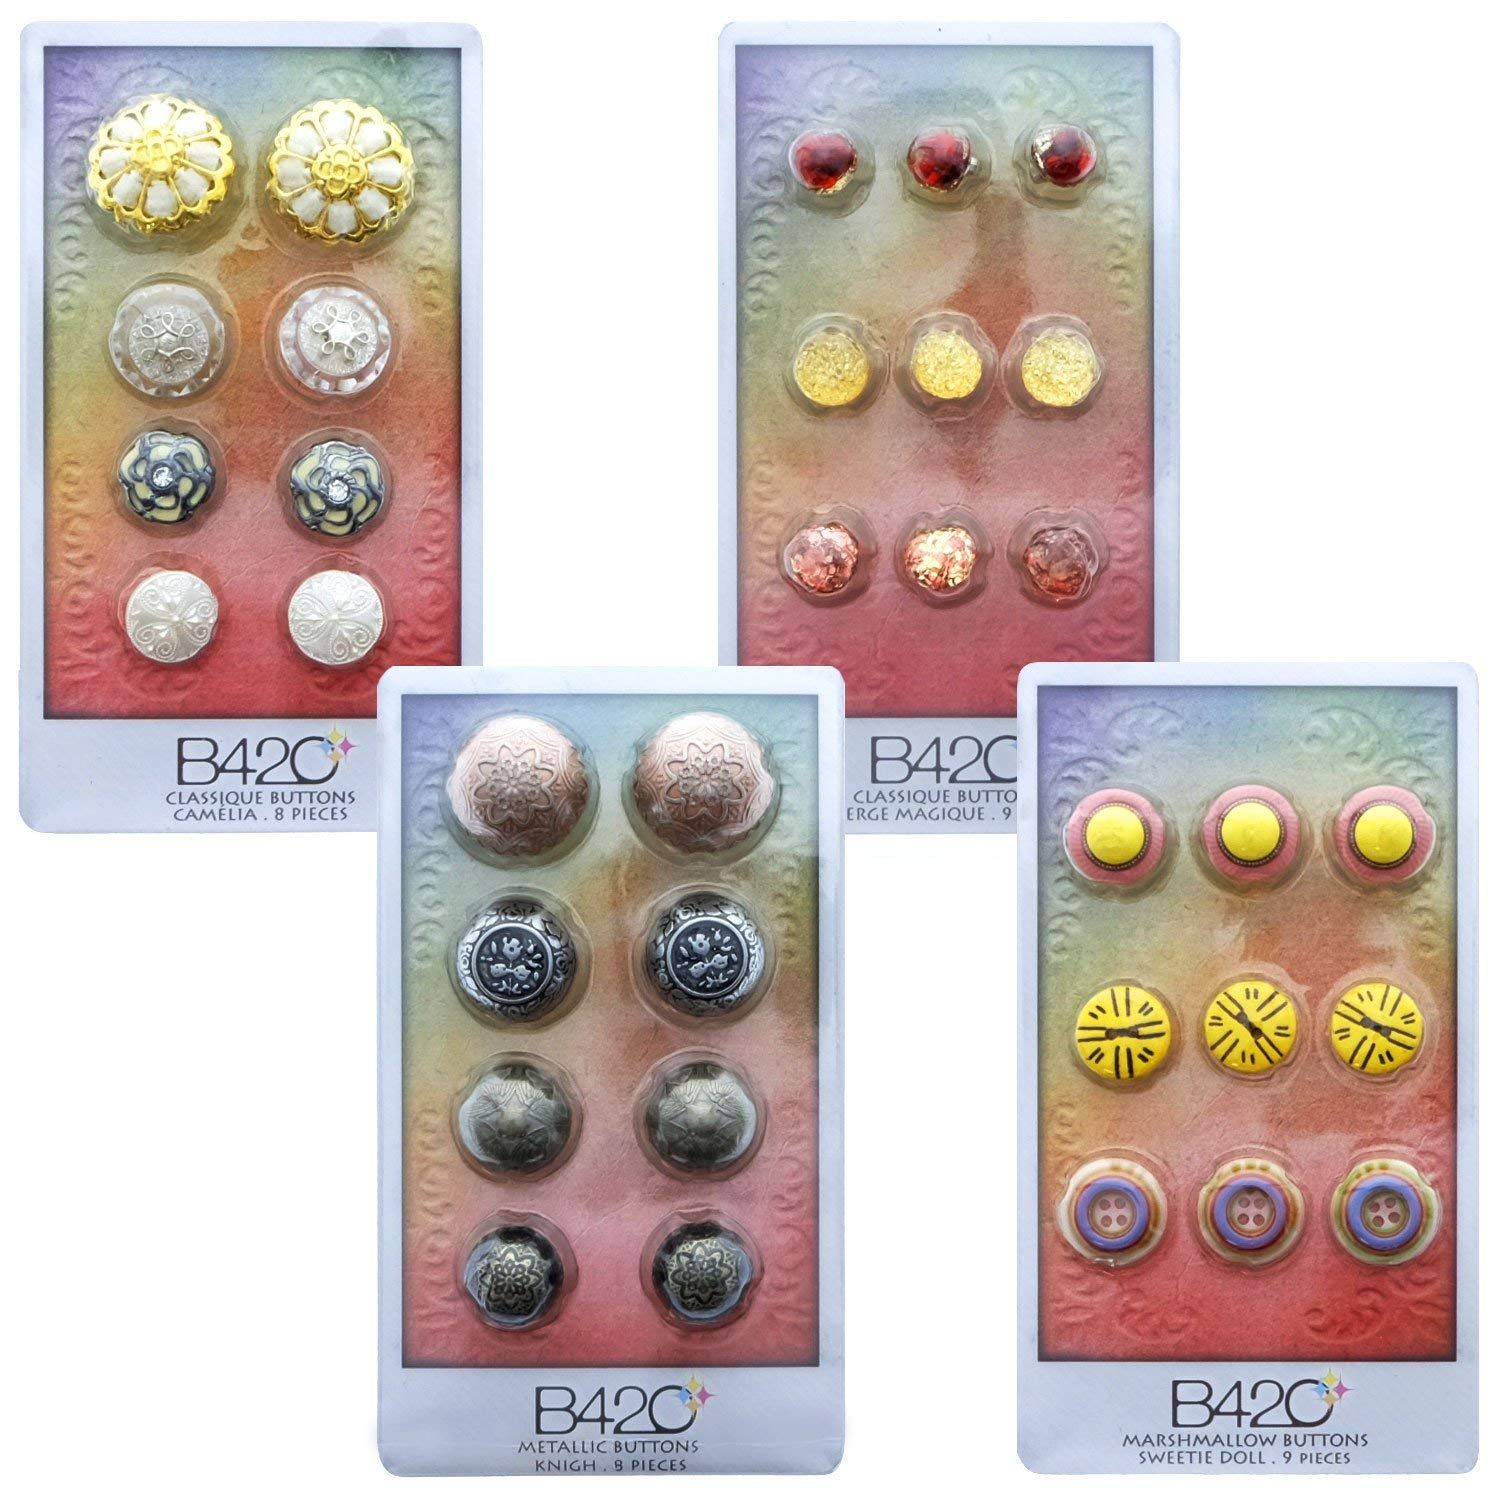 B42O Metal Bottons for Crafts Plastic Buttons for Sewing Vintage Craft Embellishments (34pcs Shank Buttons & Antique Buttons)